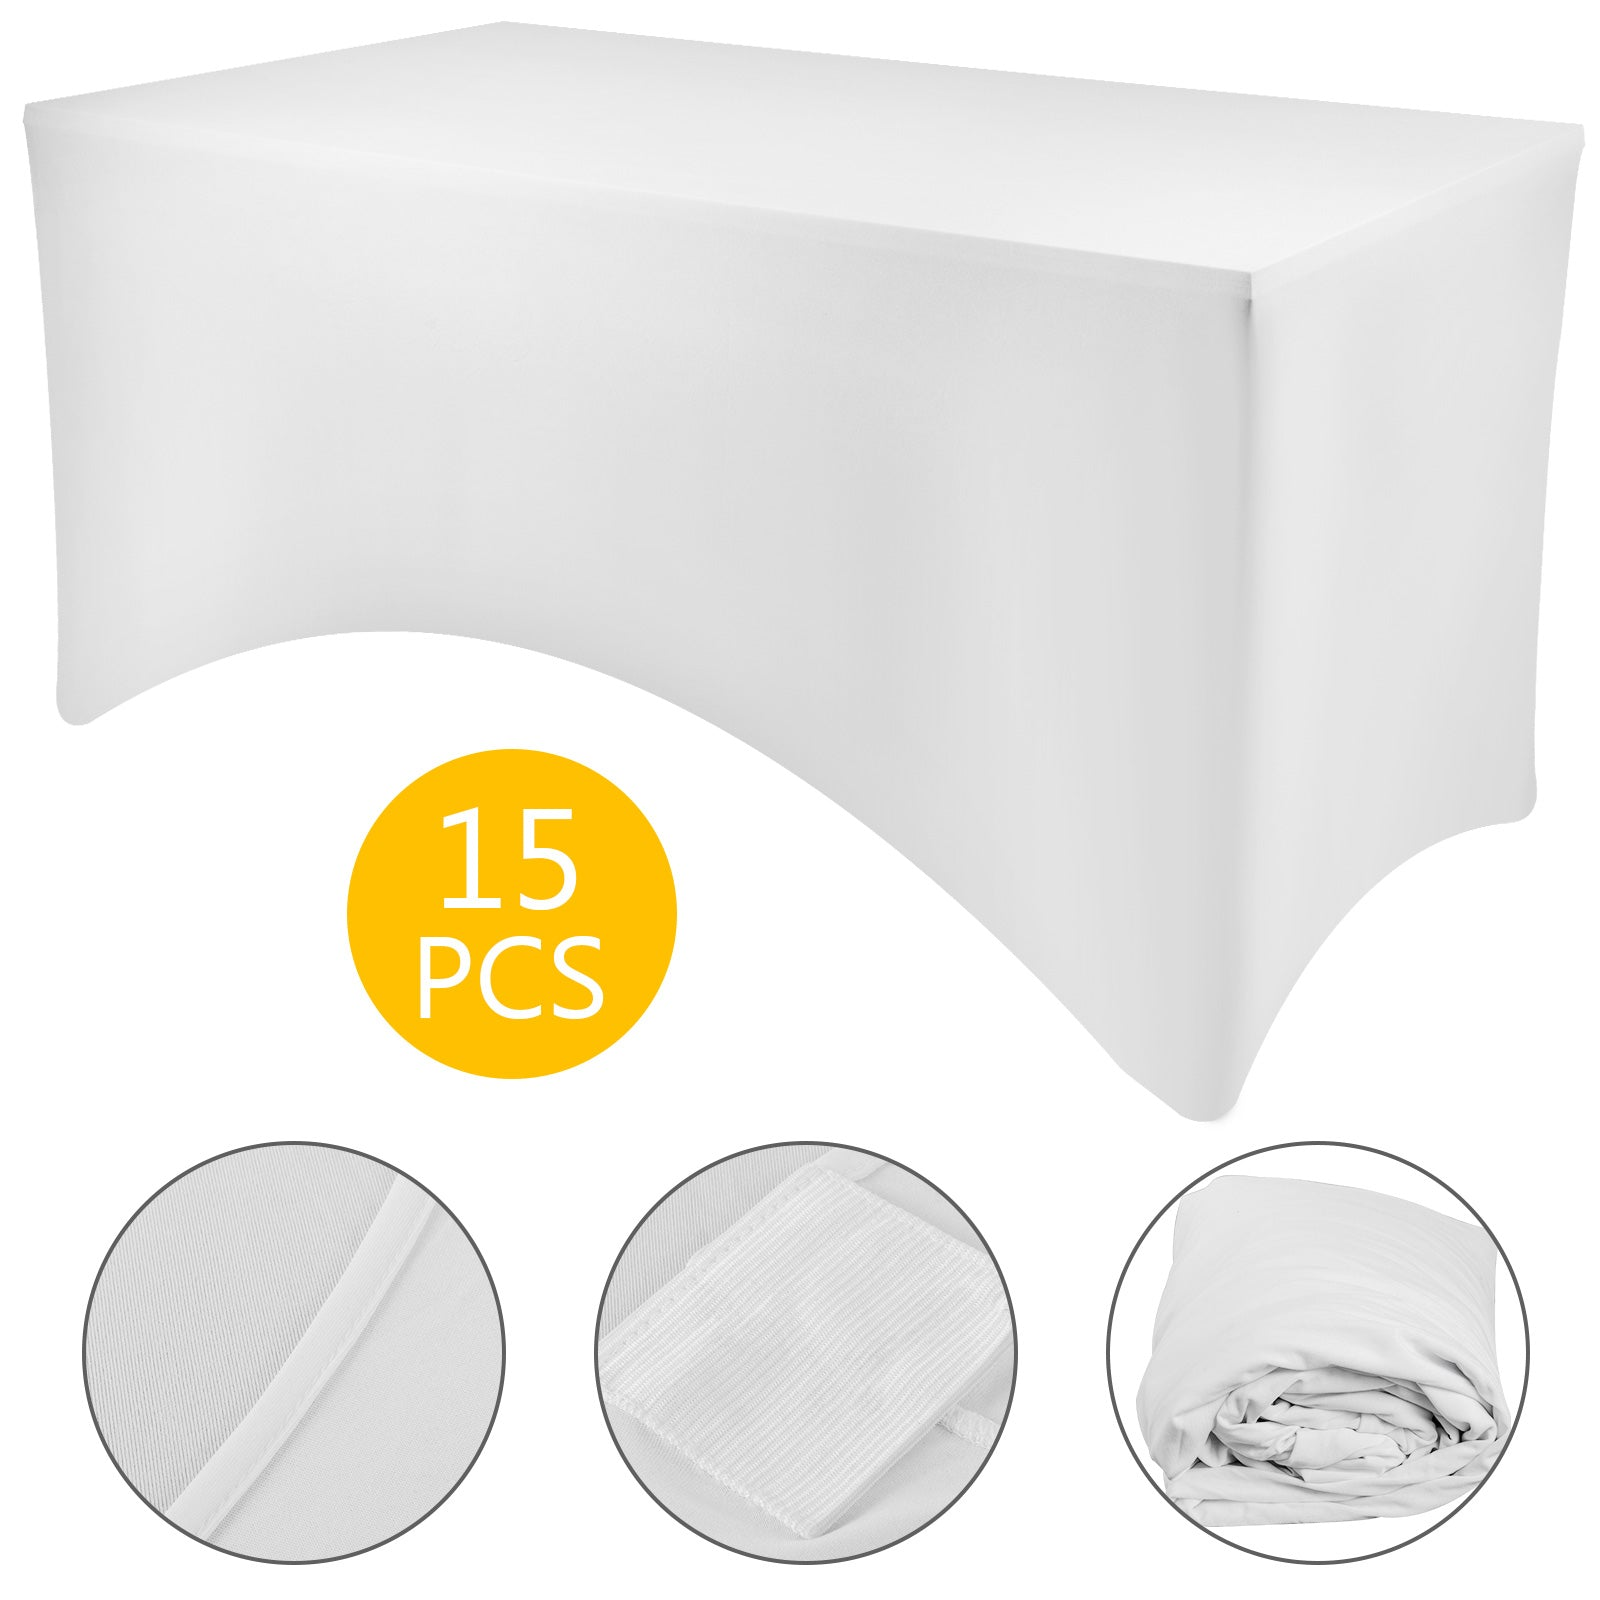 15pcs 6ft Rectangular Stretch Tablecloth Cover Fading Fabric Feet Pockets White